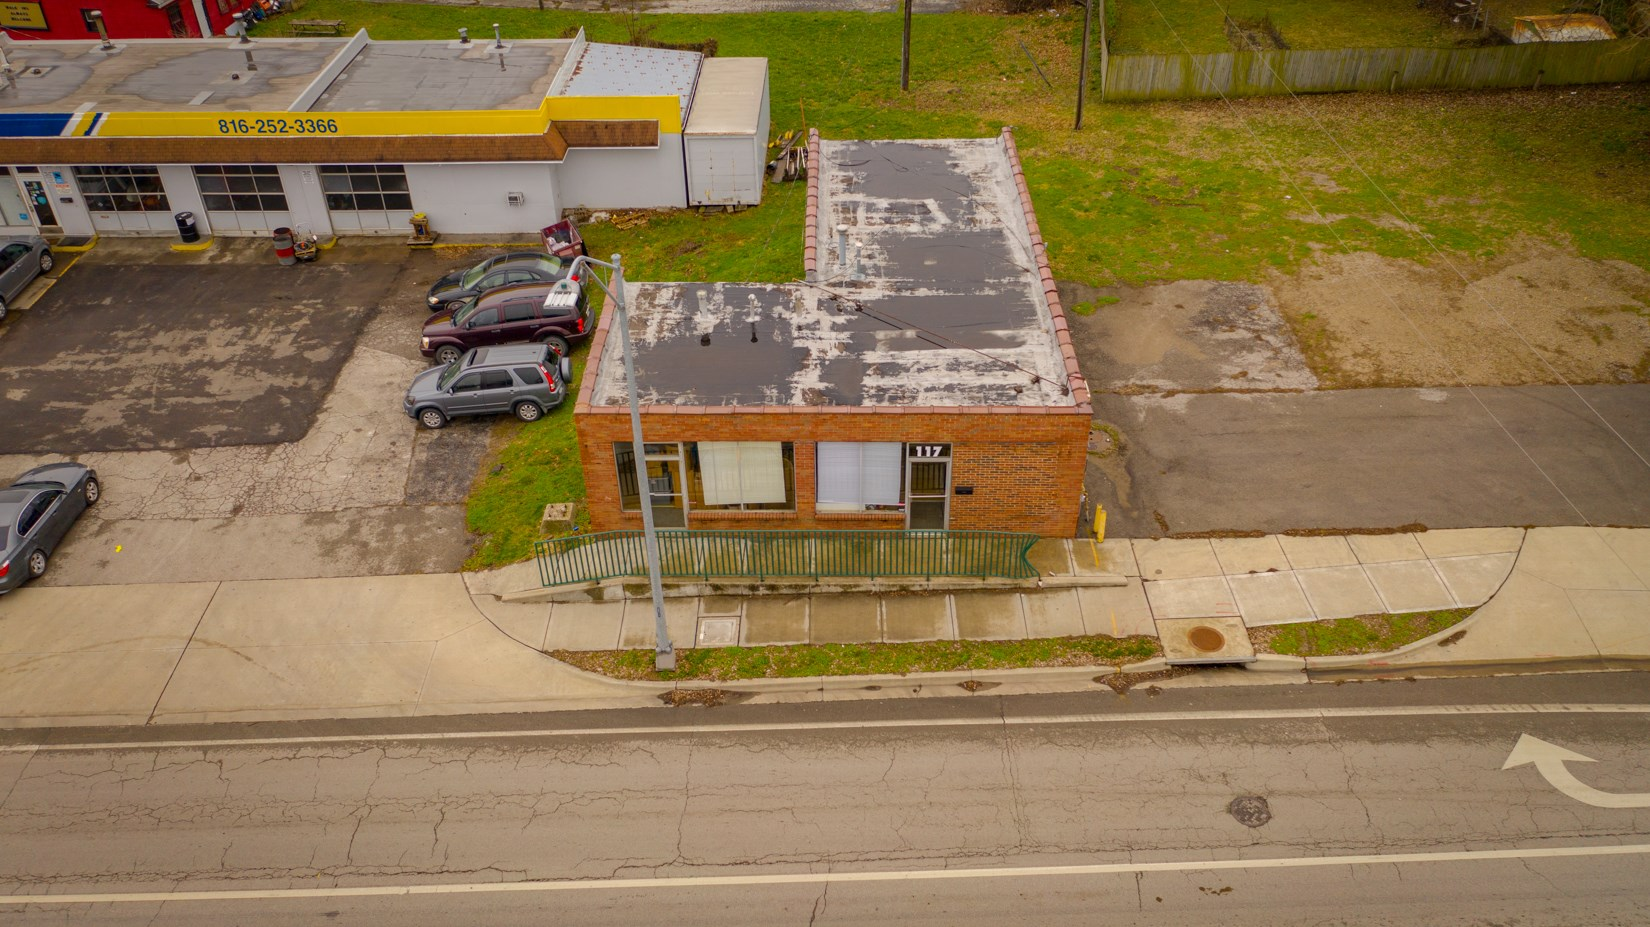 Commercial Property For Sale in Independence, MO